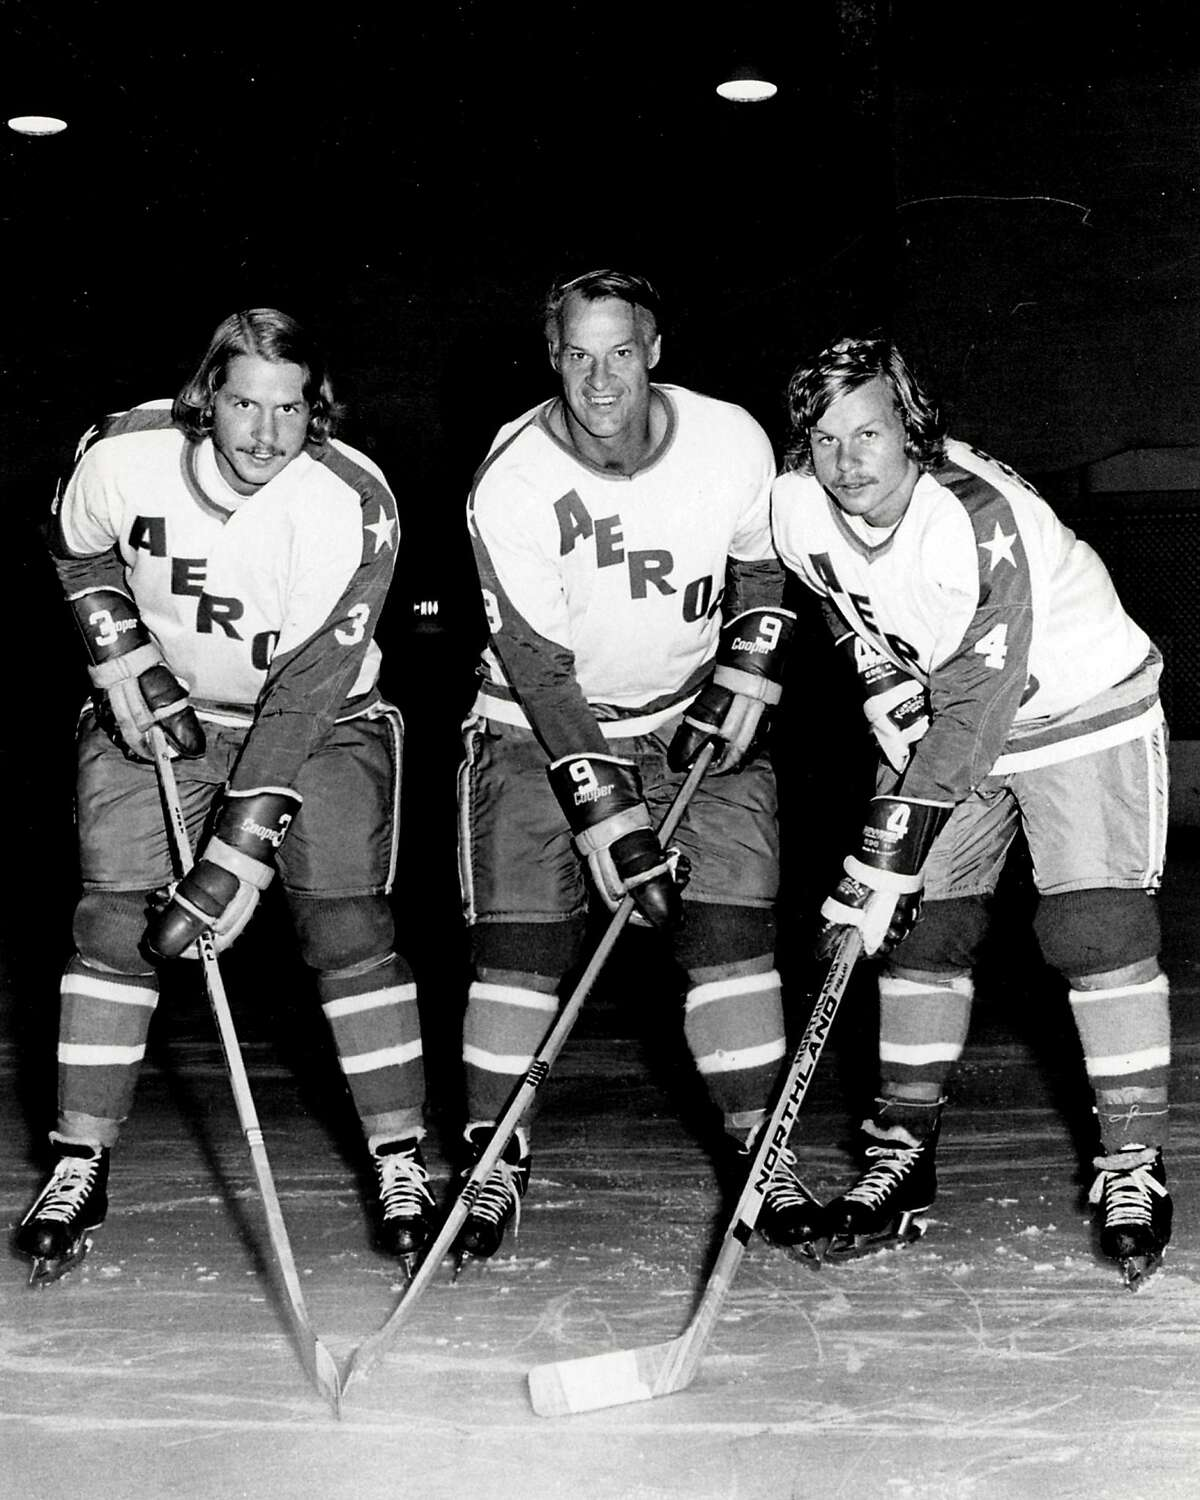 """FILE - In this Aug. 3, 1973, file photo, former Detroit Red Wings great Gordie Howe, center, is flanked by sons Marty, left, and Mark as they try their new Houston Aeros uniforms in St. Clair Shores, Mich. Gordie Howe, the hockey great who set scoring records that stood for decades, has died. He was 88. Son Murray Howe confirmed the death Friday, June 10, 2016, texting to The Associated Press: """"Mr Hockey left peacefully, beautifully, and w no regrets."""" (AP Photo/The Macomb Daily, David Posavetz, File)"""